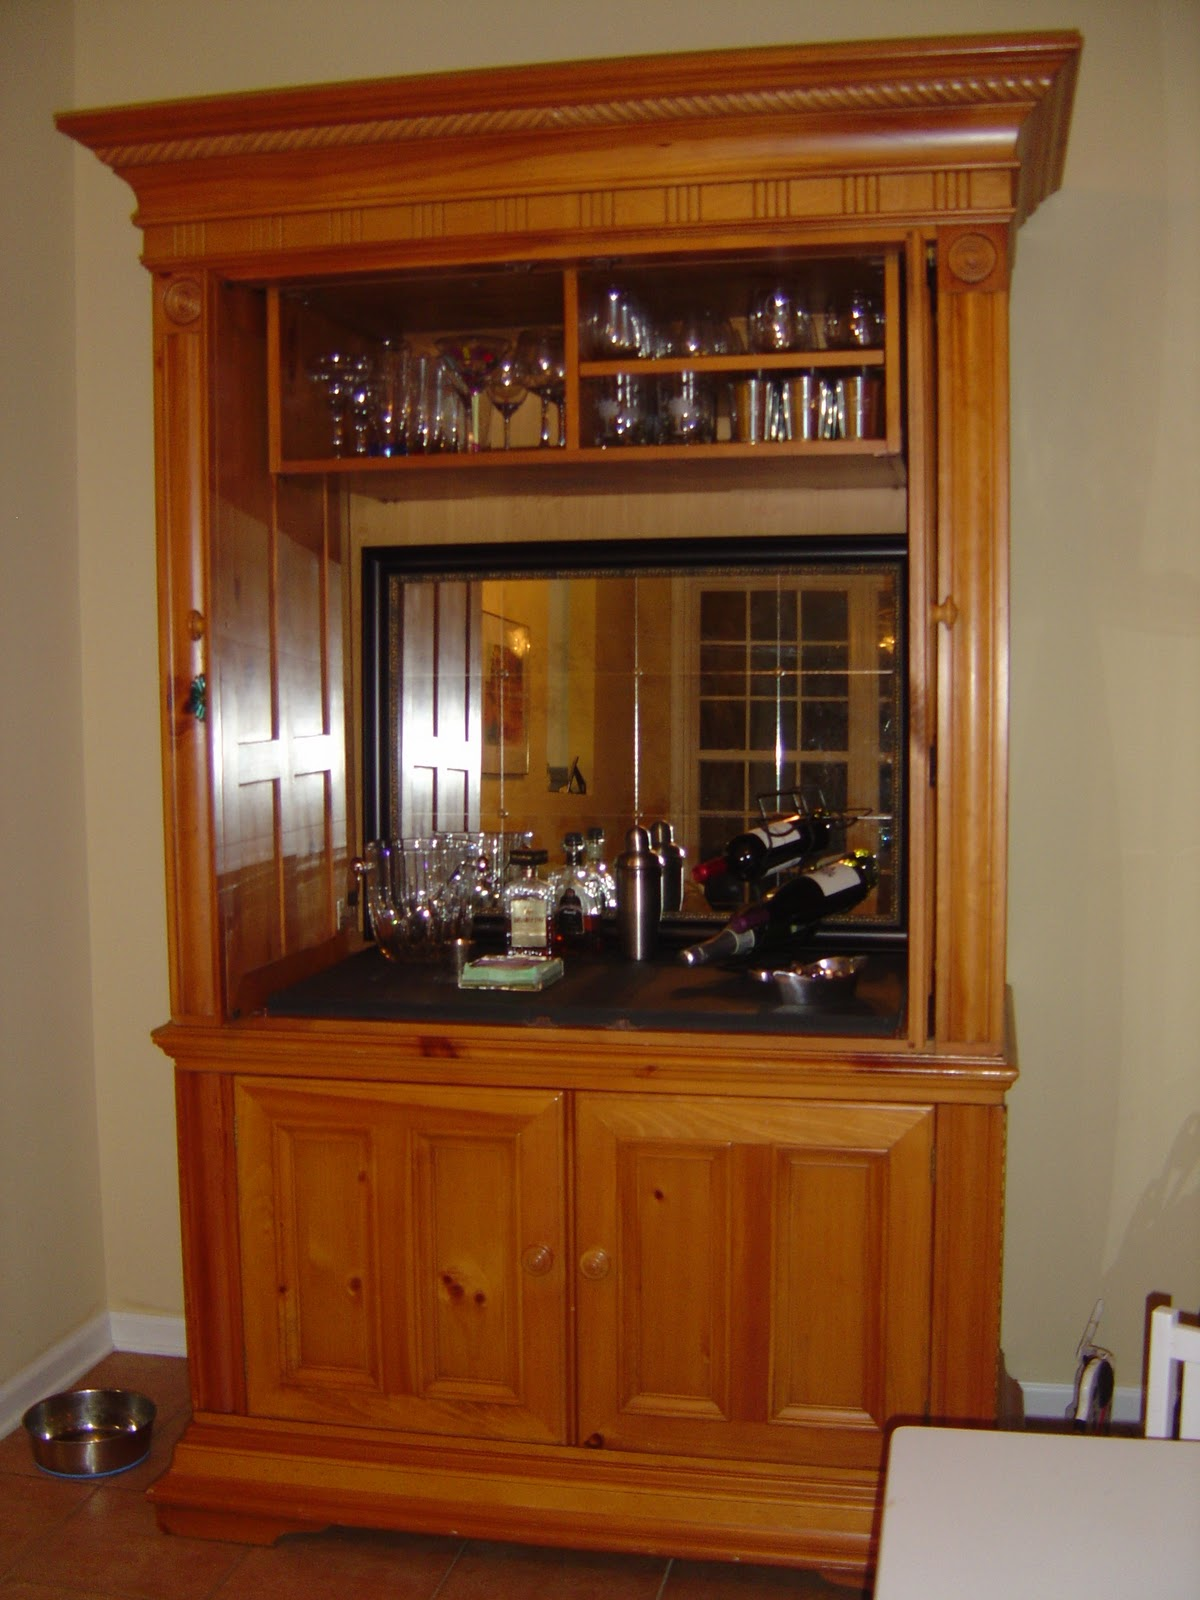 Converted An Entertainment Center Into A Bar This Was Easy Project And Turned Out Great With Minor Modifications Mirror Added It S Perfect